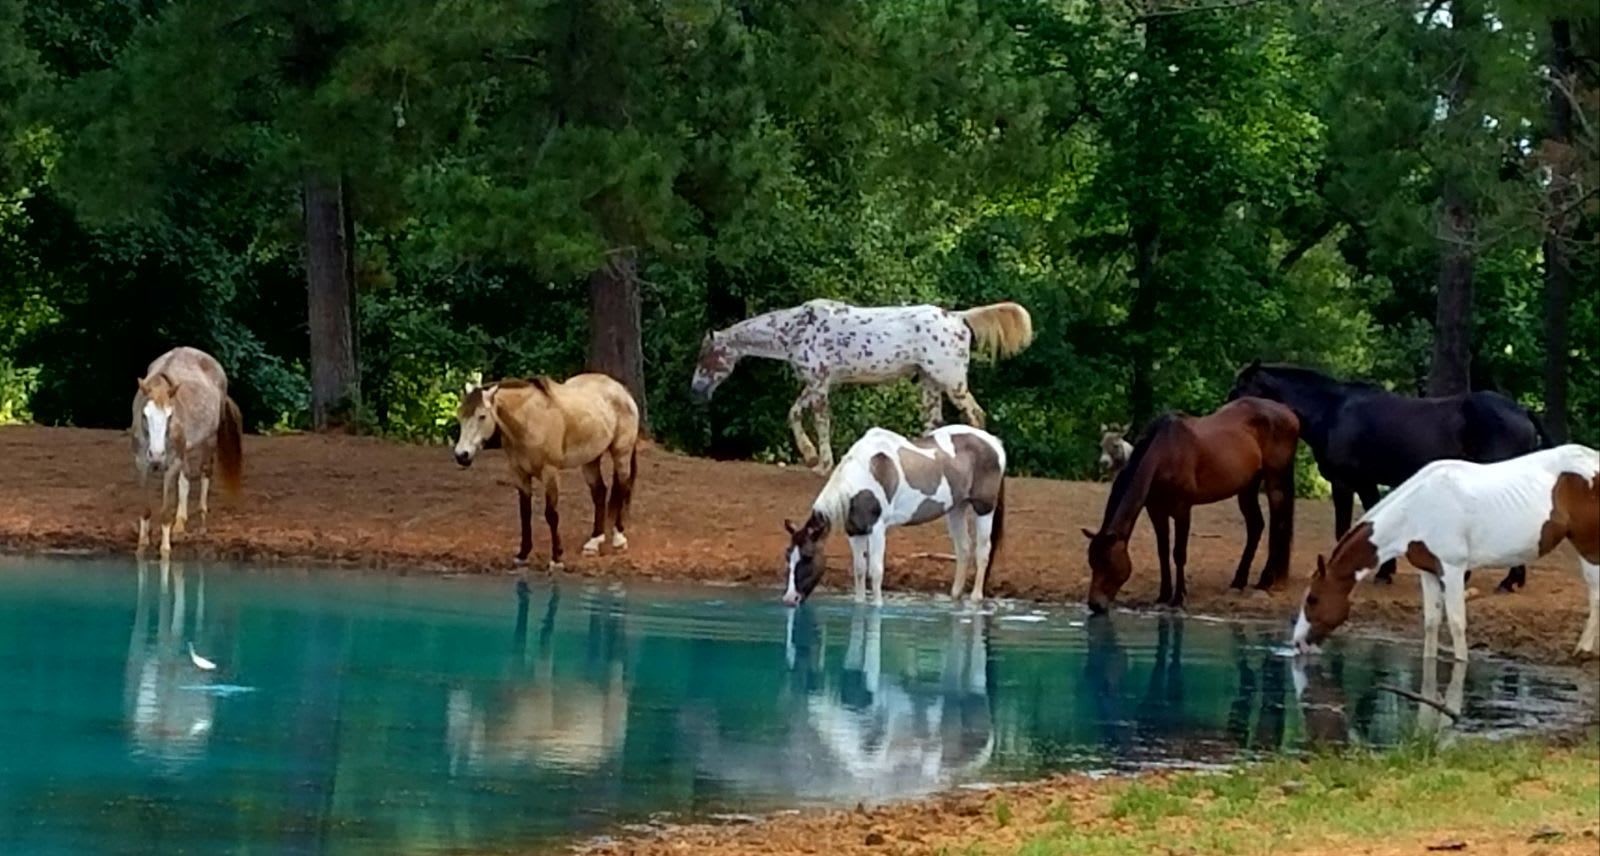 Your kids will love the horses that live on the property.